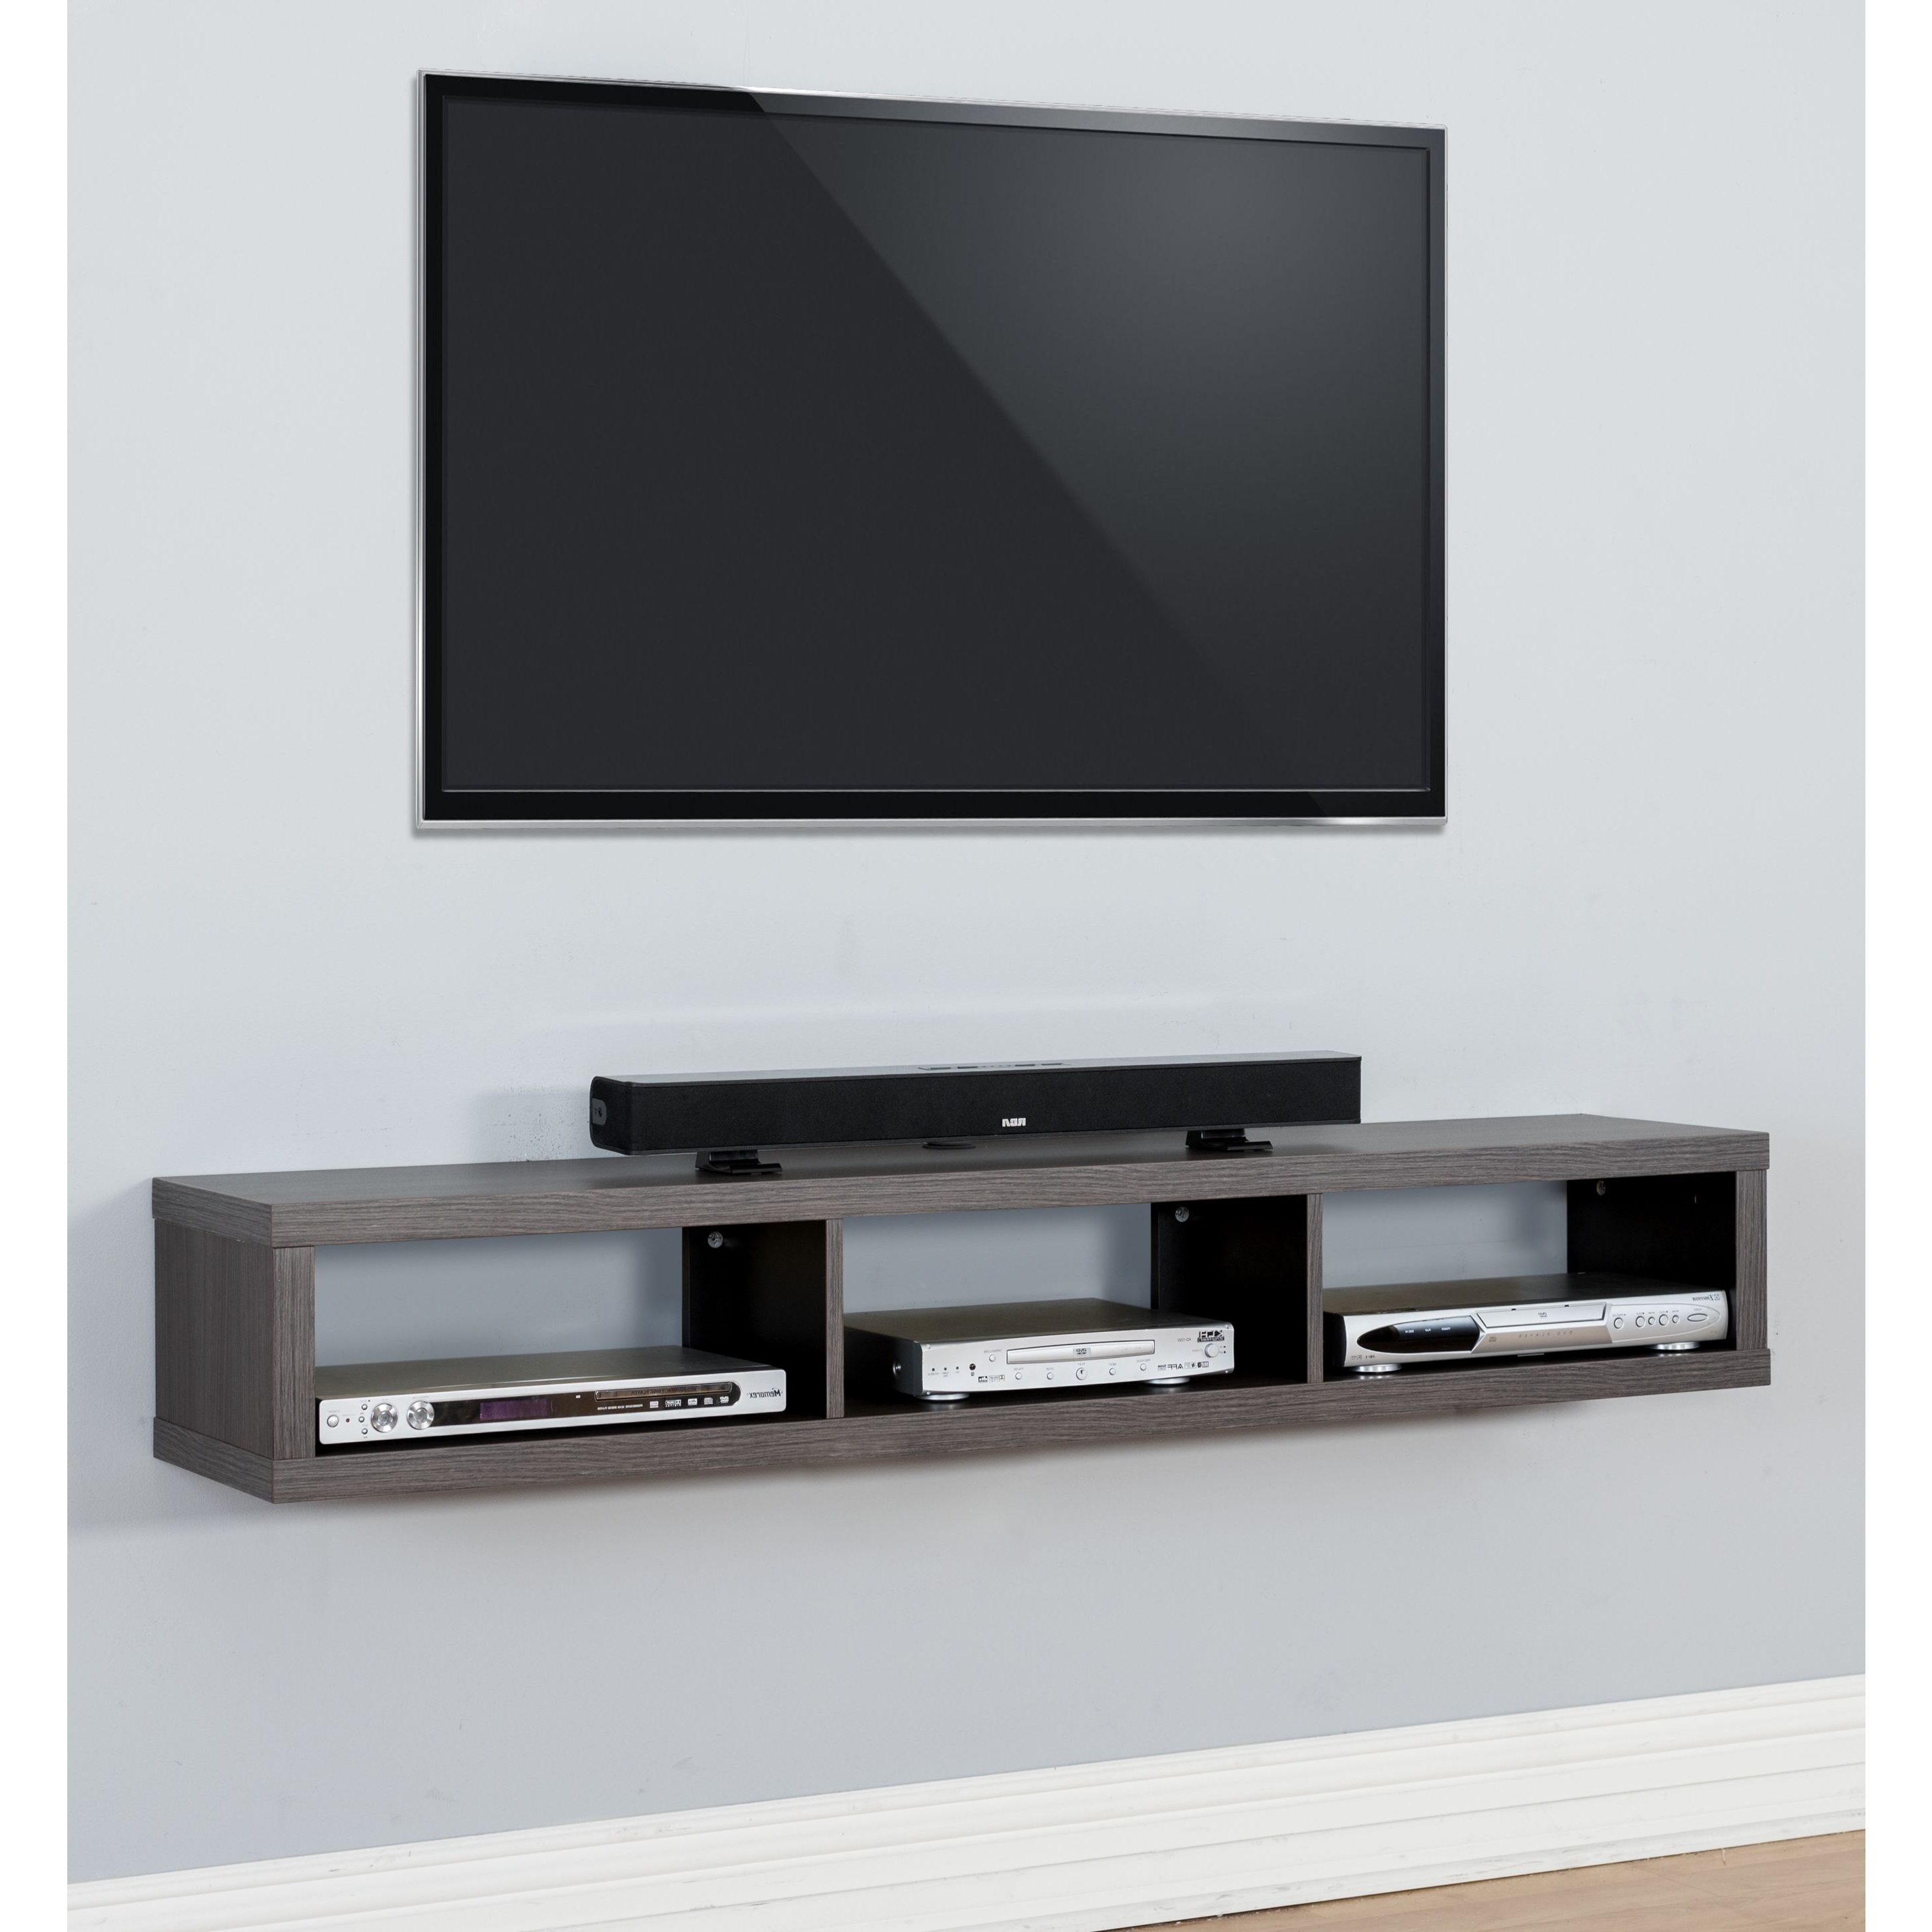 Wall Mounted Tv Console (View 14 of 15)